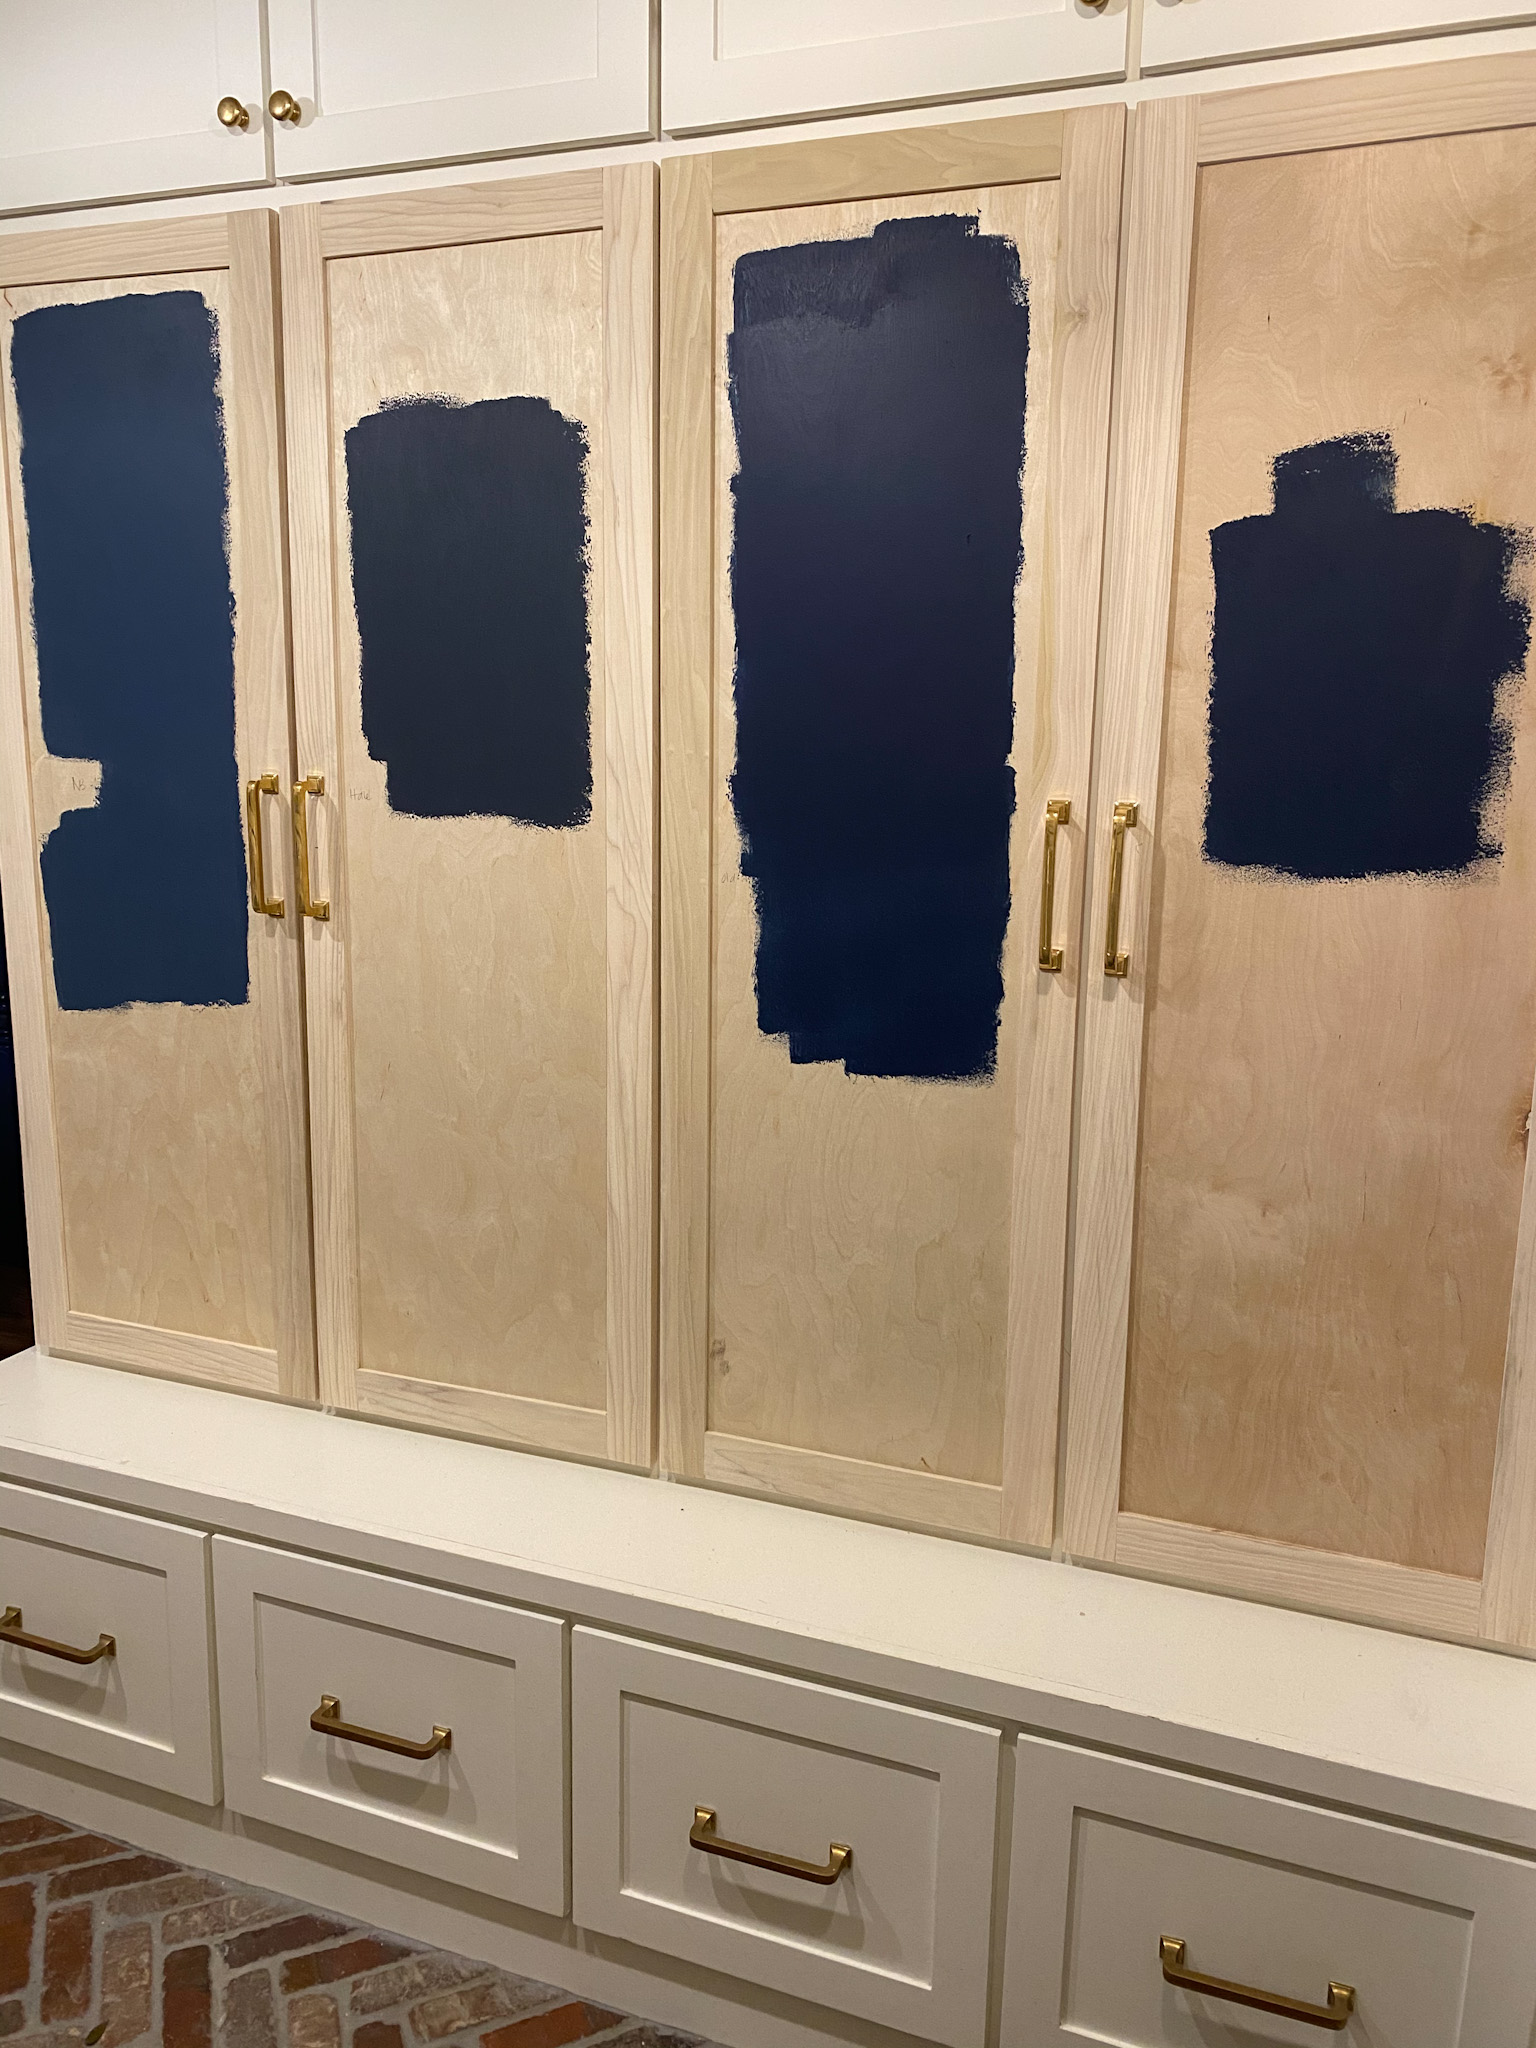 Navy Blue Paint by popular Houston life and style blog, Fancy Ashley: image of cabinets painted in navy blue paint.